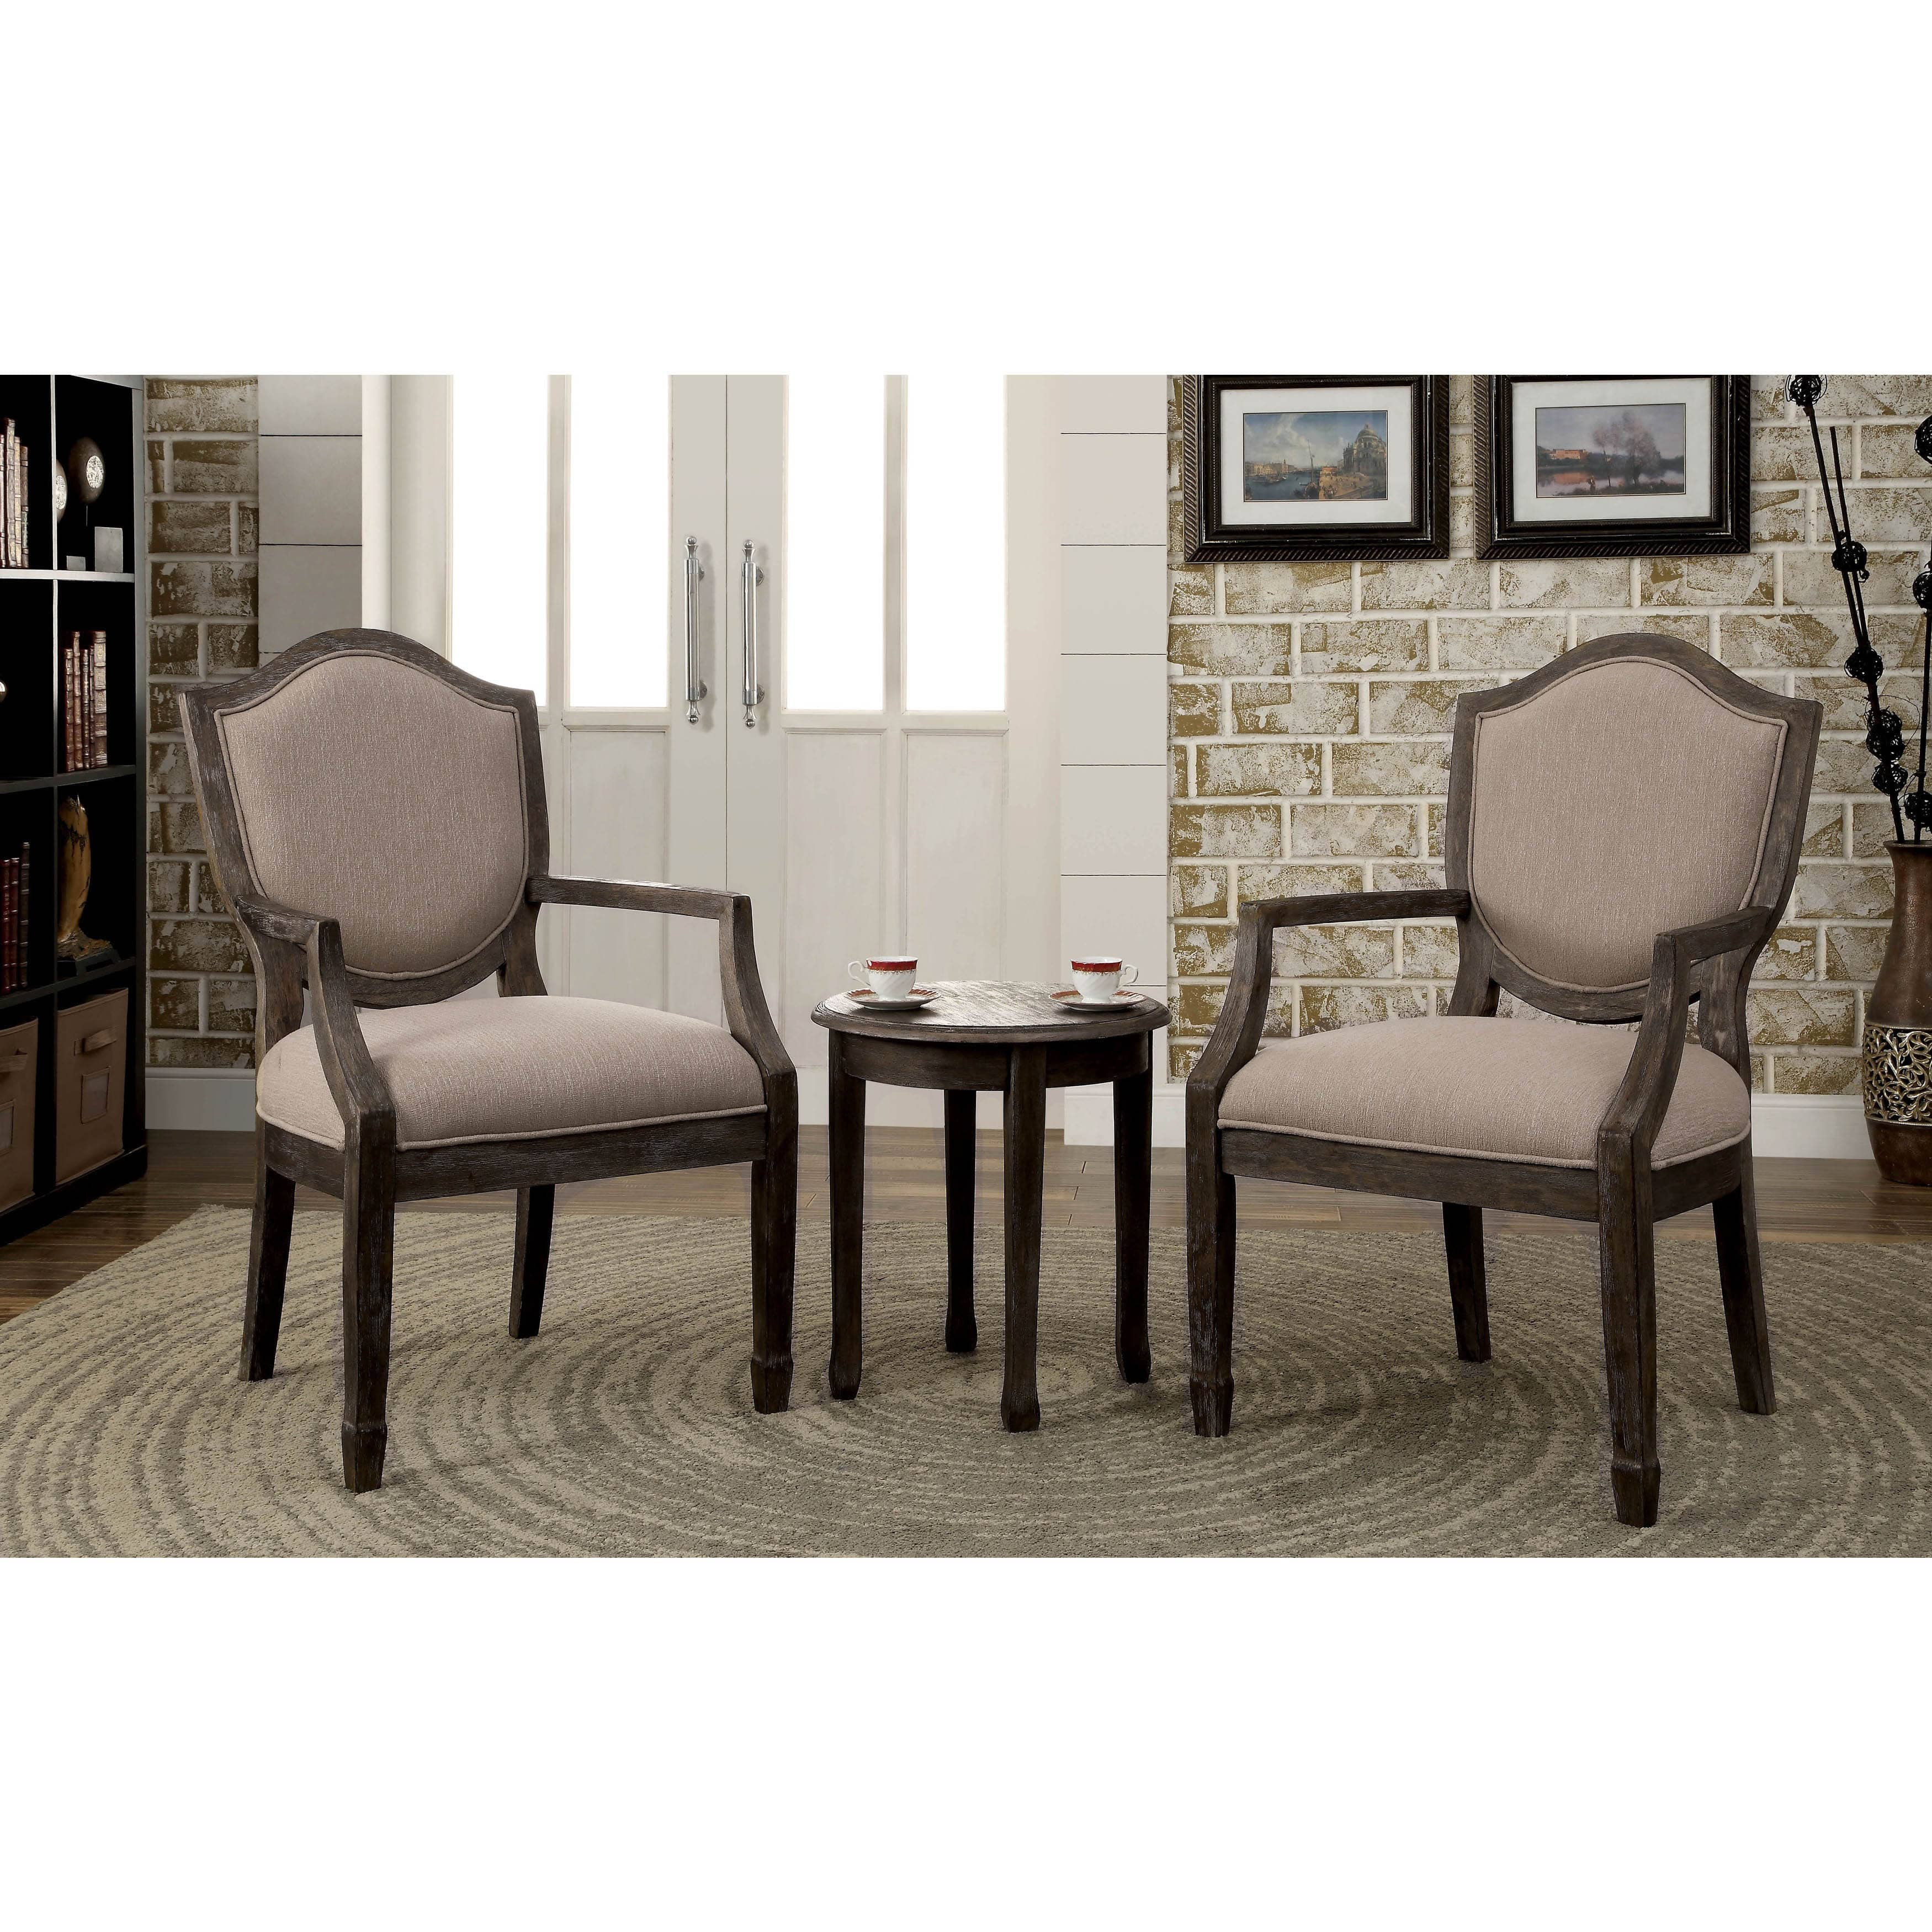 Furniture of America Caroline 3-piece Living Room Furniture Set for your sofa seat height,cape cod style interior